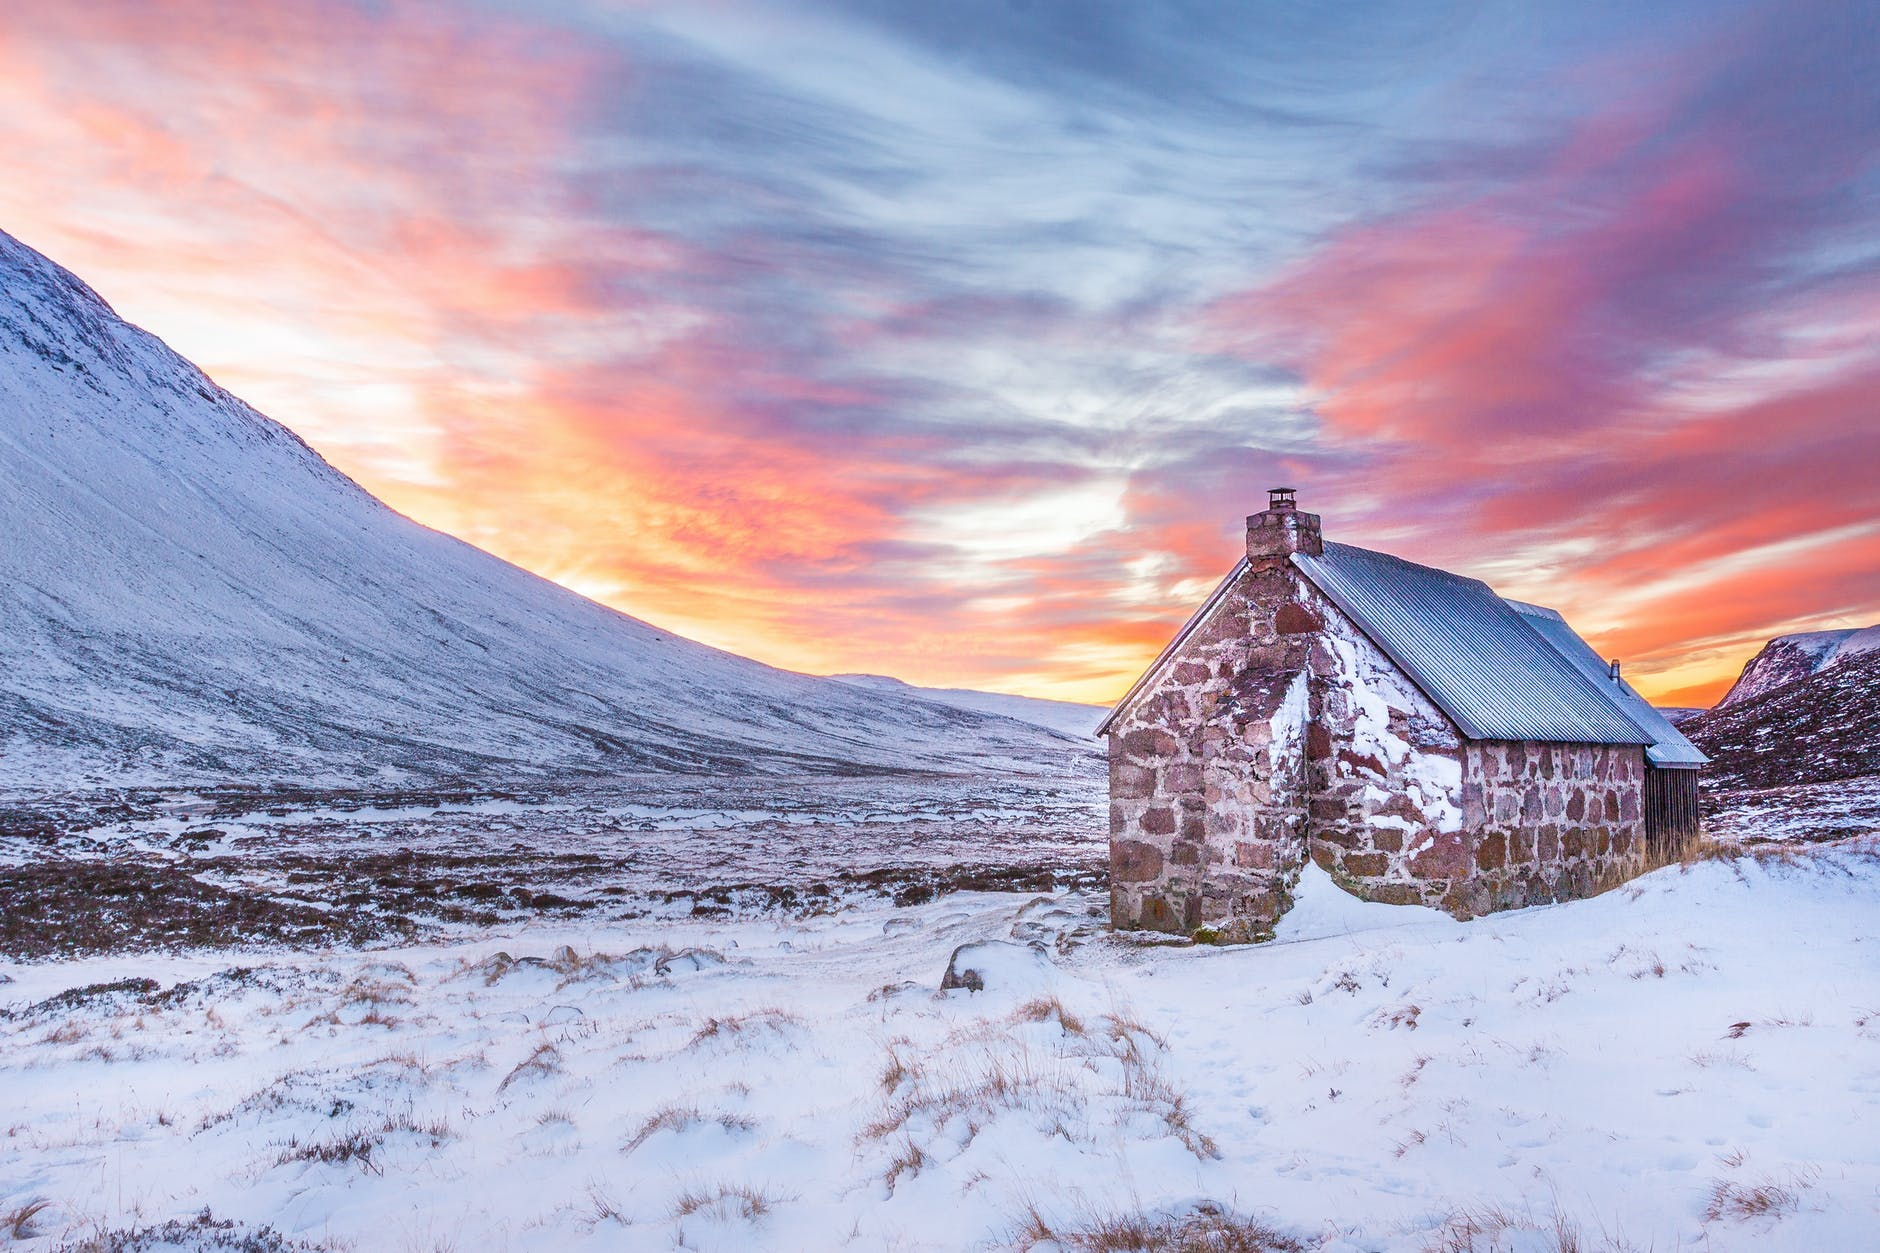 A cottage in a snowy landscape at sunset.